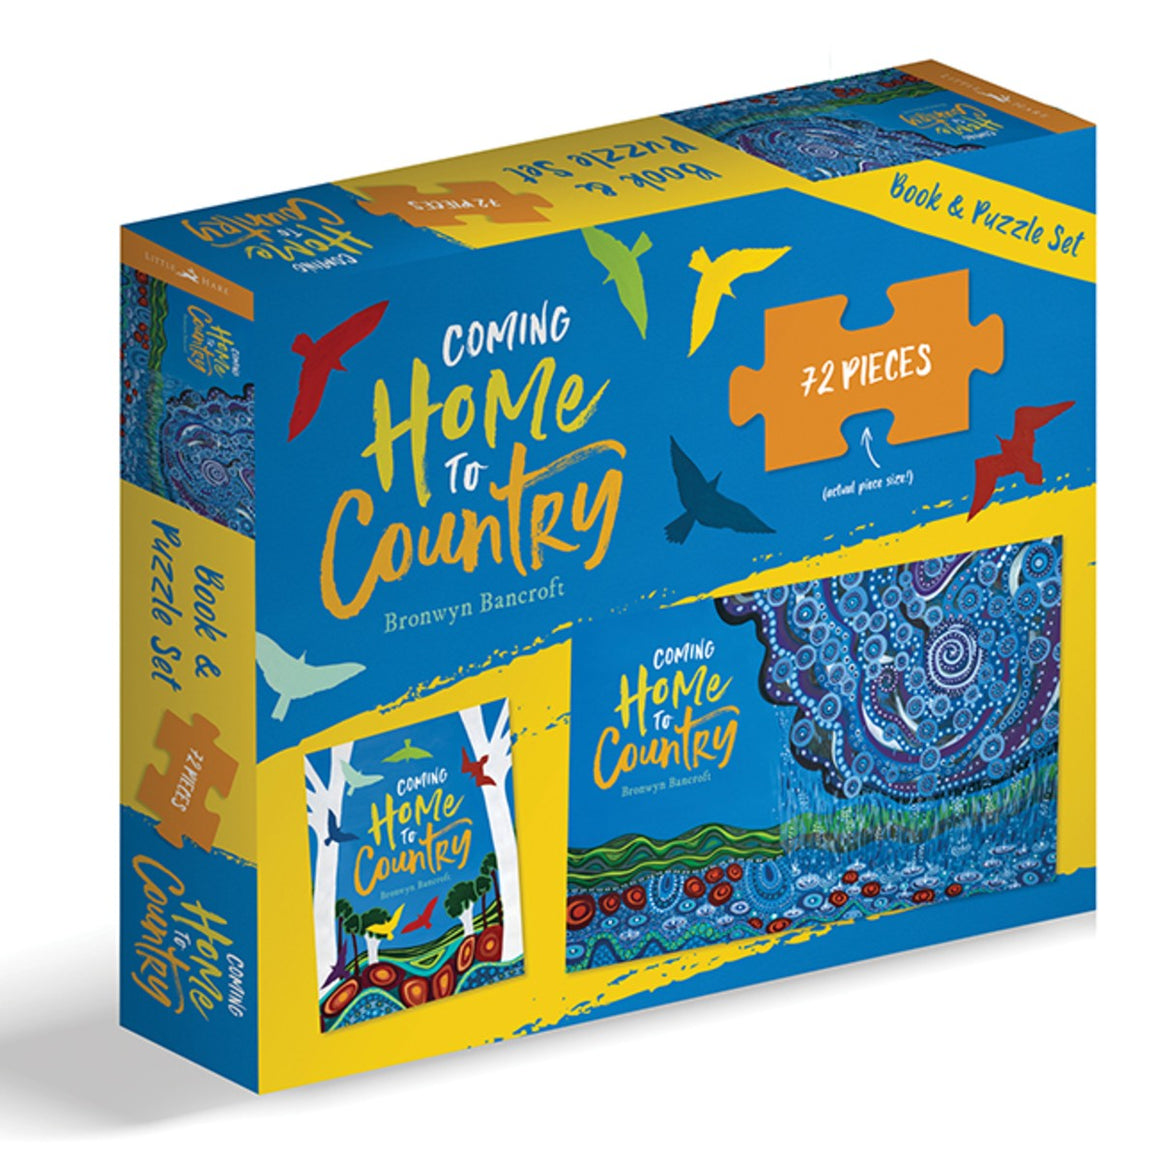 Coming Home To Country Book and Puzzle Set | Author: Bronwyn Bancroft